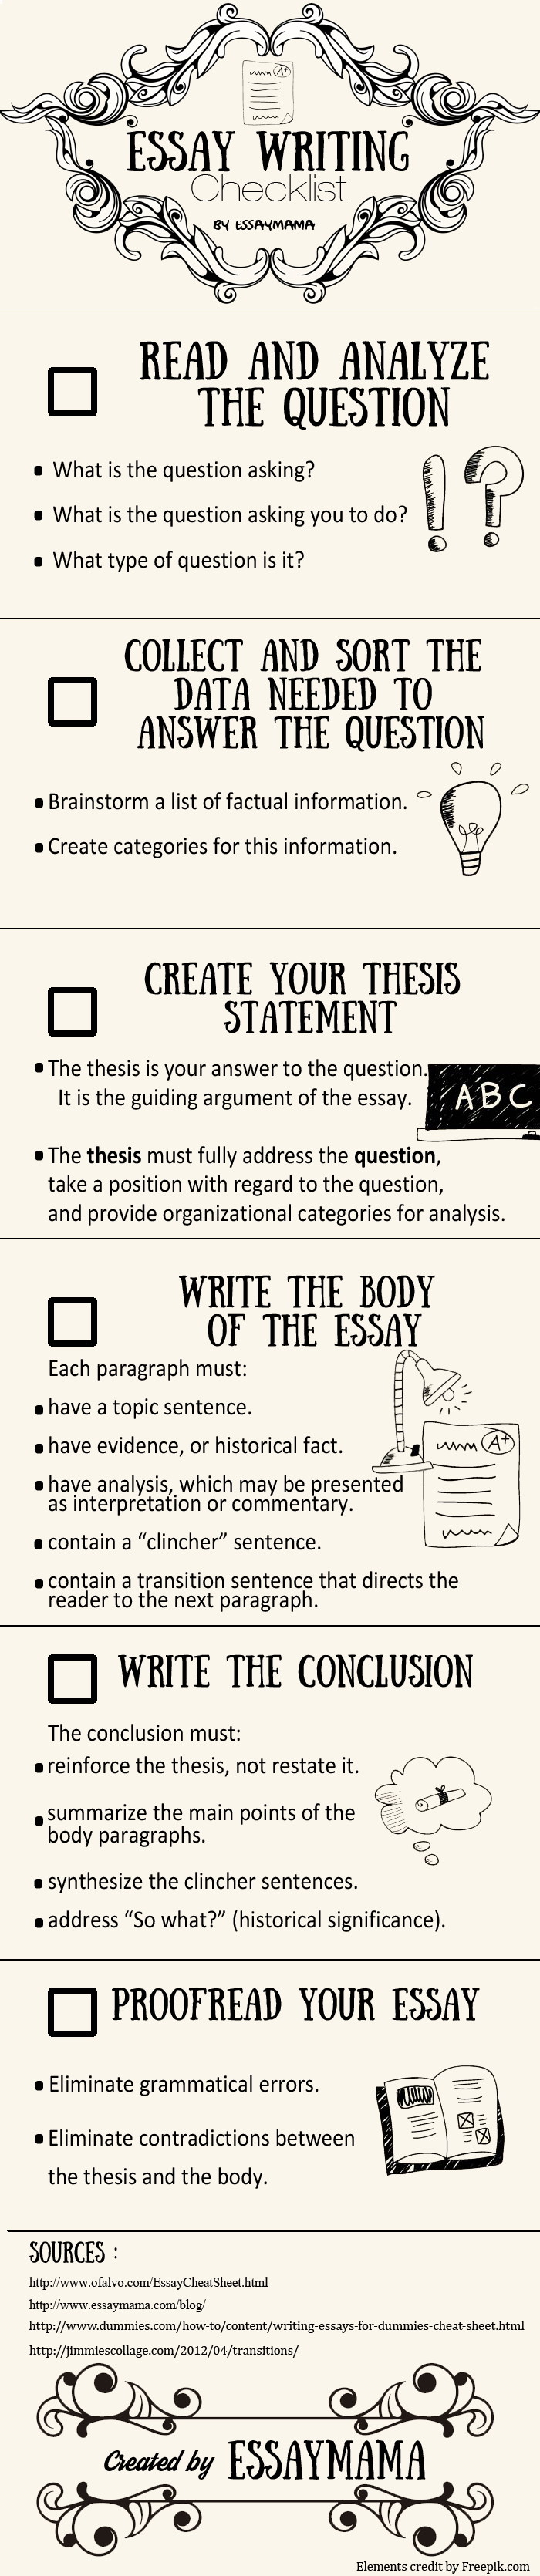 check your essay